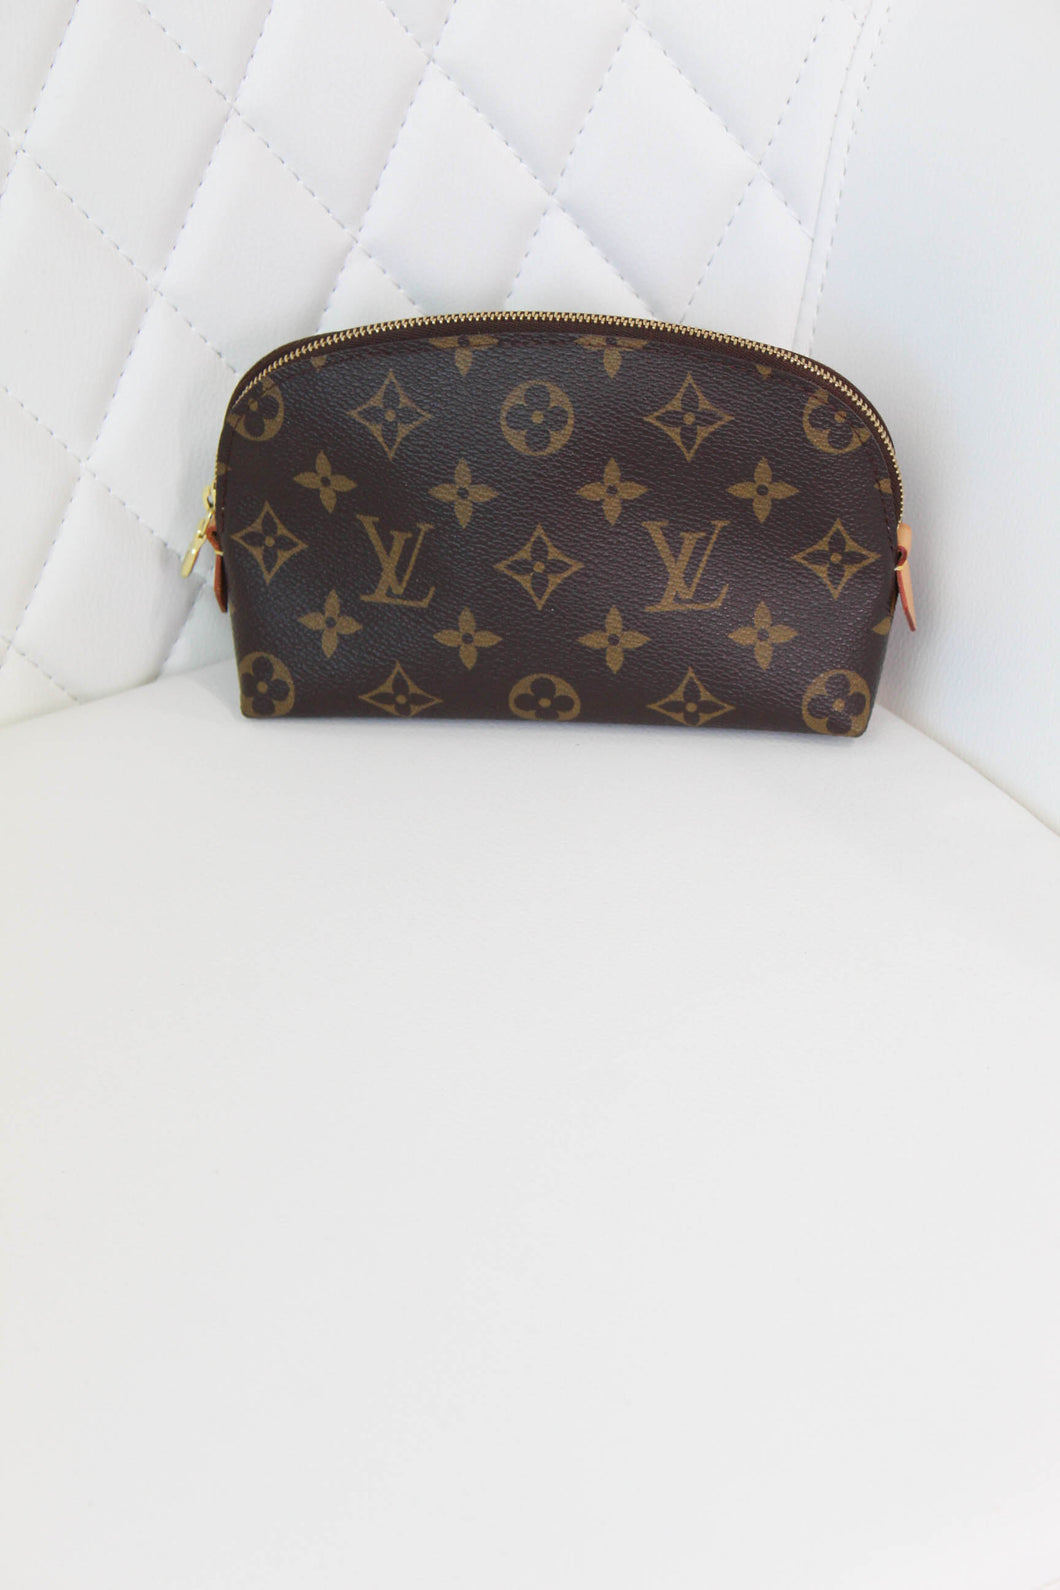 Louis Vuitton Cosmetic Bag